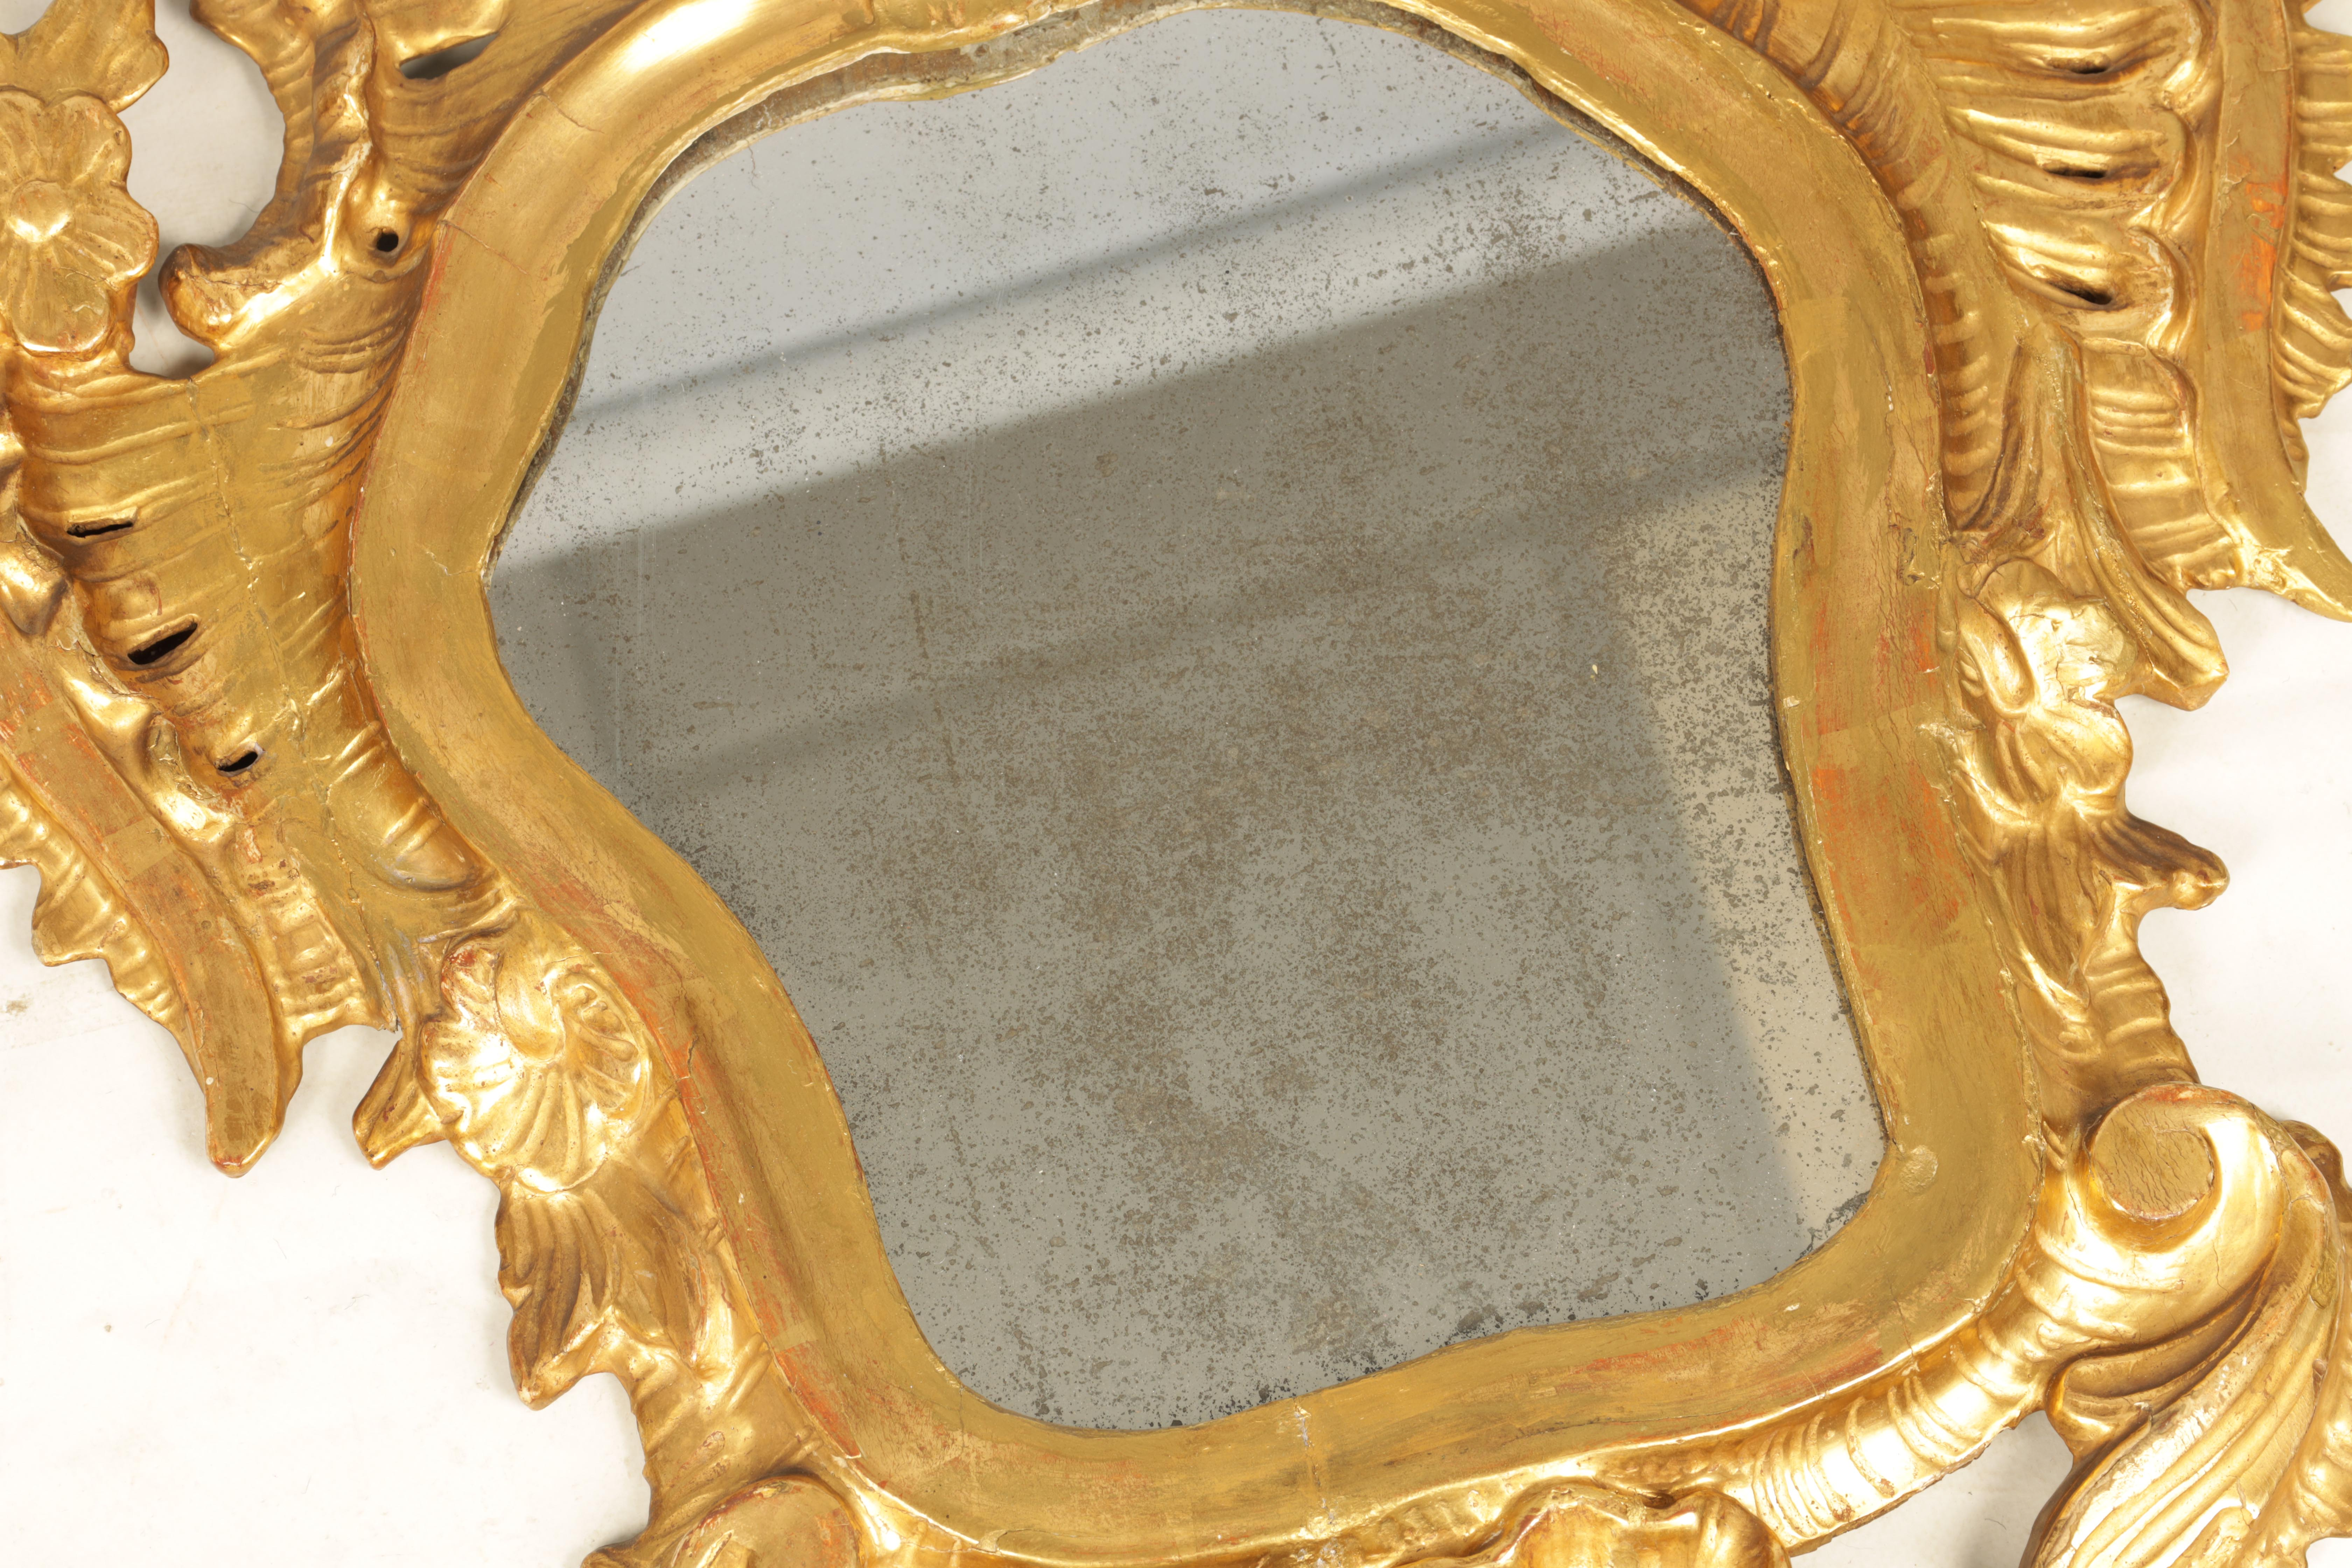 A PAIR OF 19TH CENTURY CARVED GILT WOOD ITALIAN FLORENTINE MIRRORS with leaf and shell carved frames - Image 5 of 8